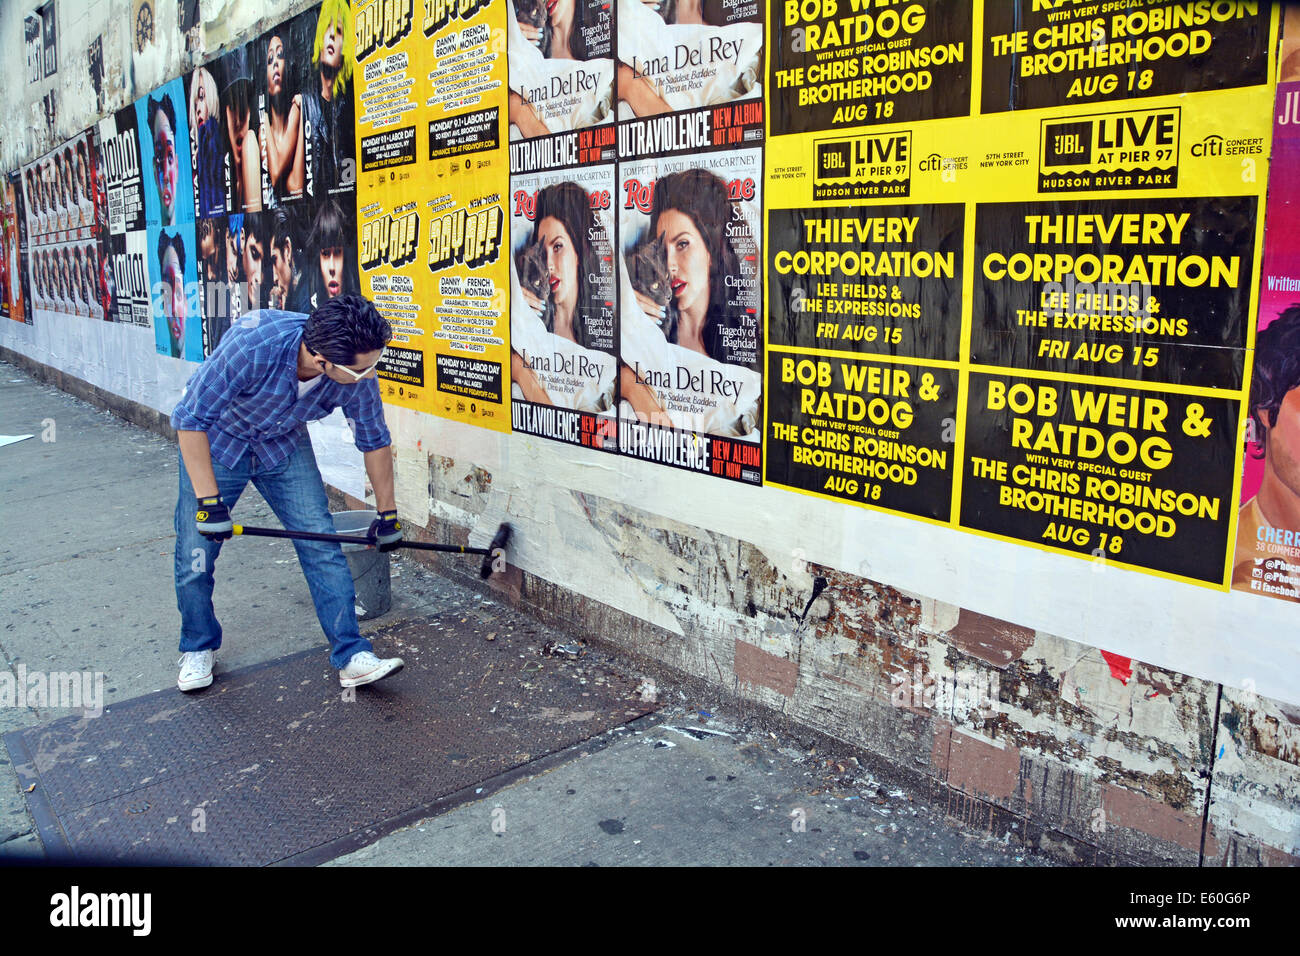 A man with the unusual occupation of hanging posters for rock shows. In Greenwich Village, New York City - Stock Image